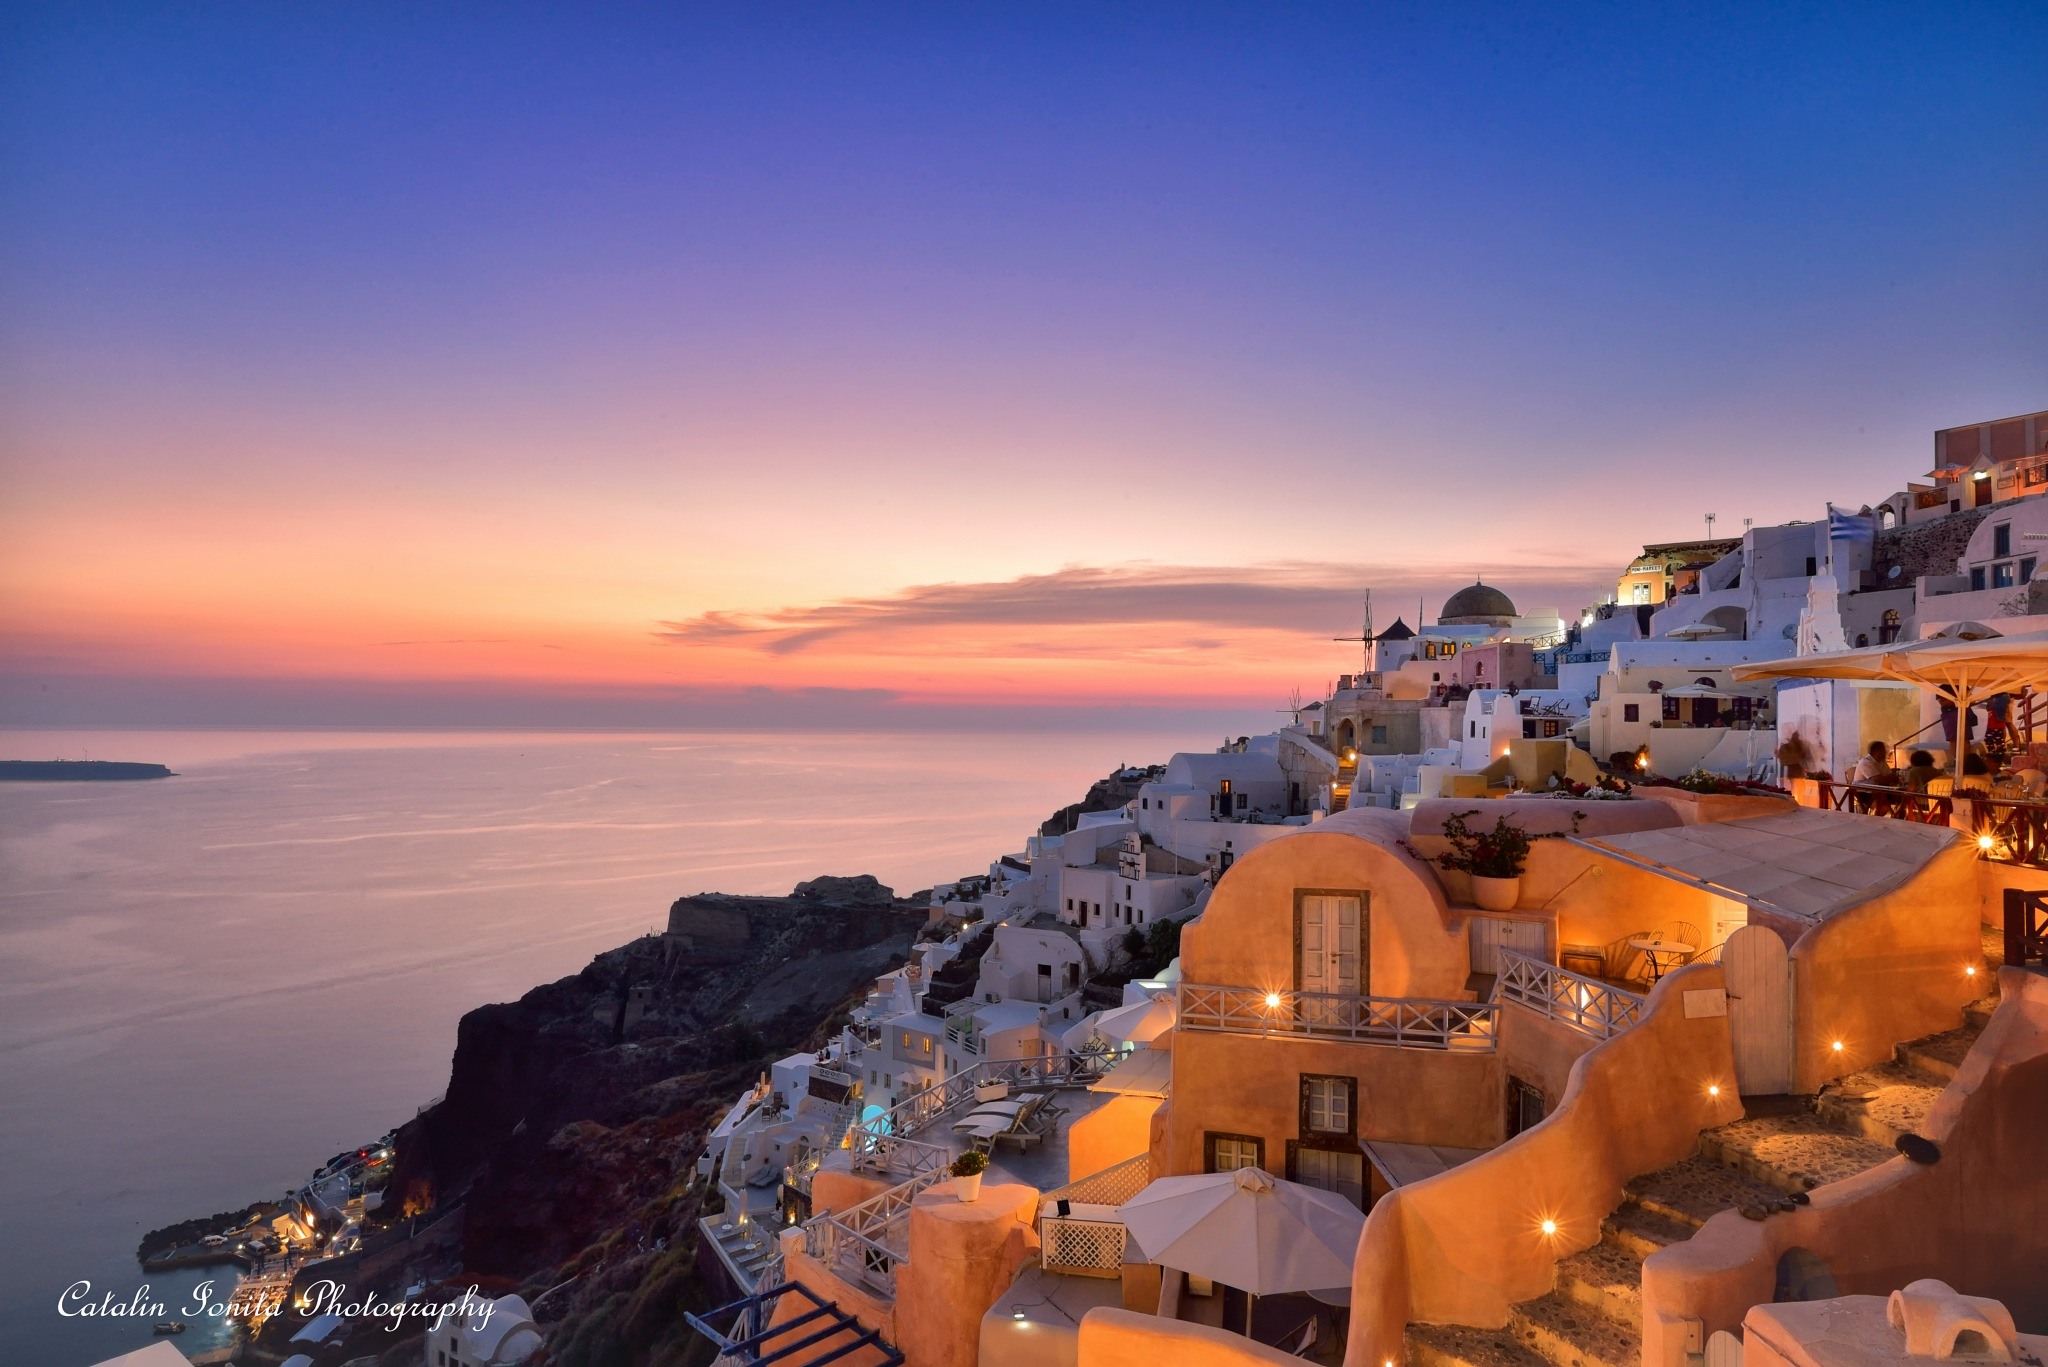 After sunset in Oia by CatalinIonitaPhotographer